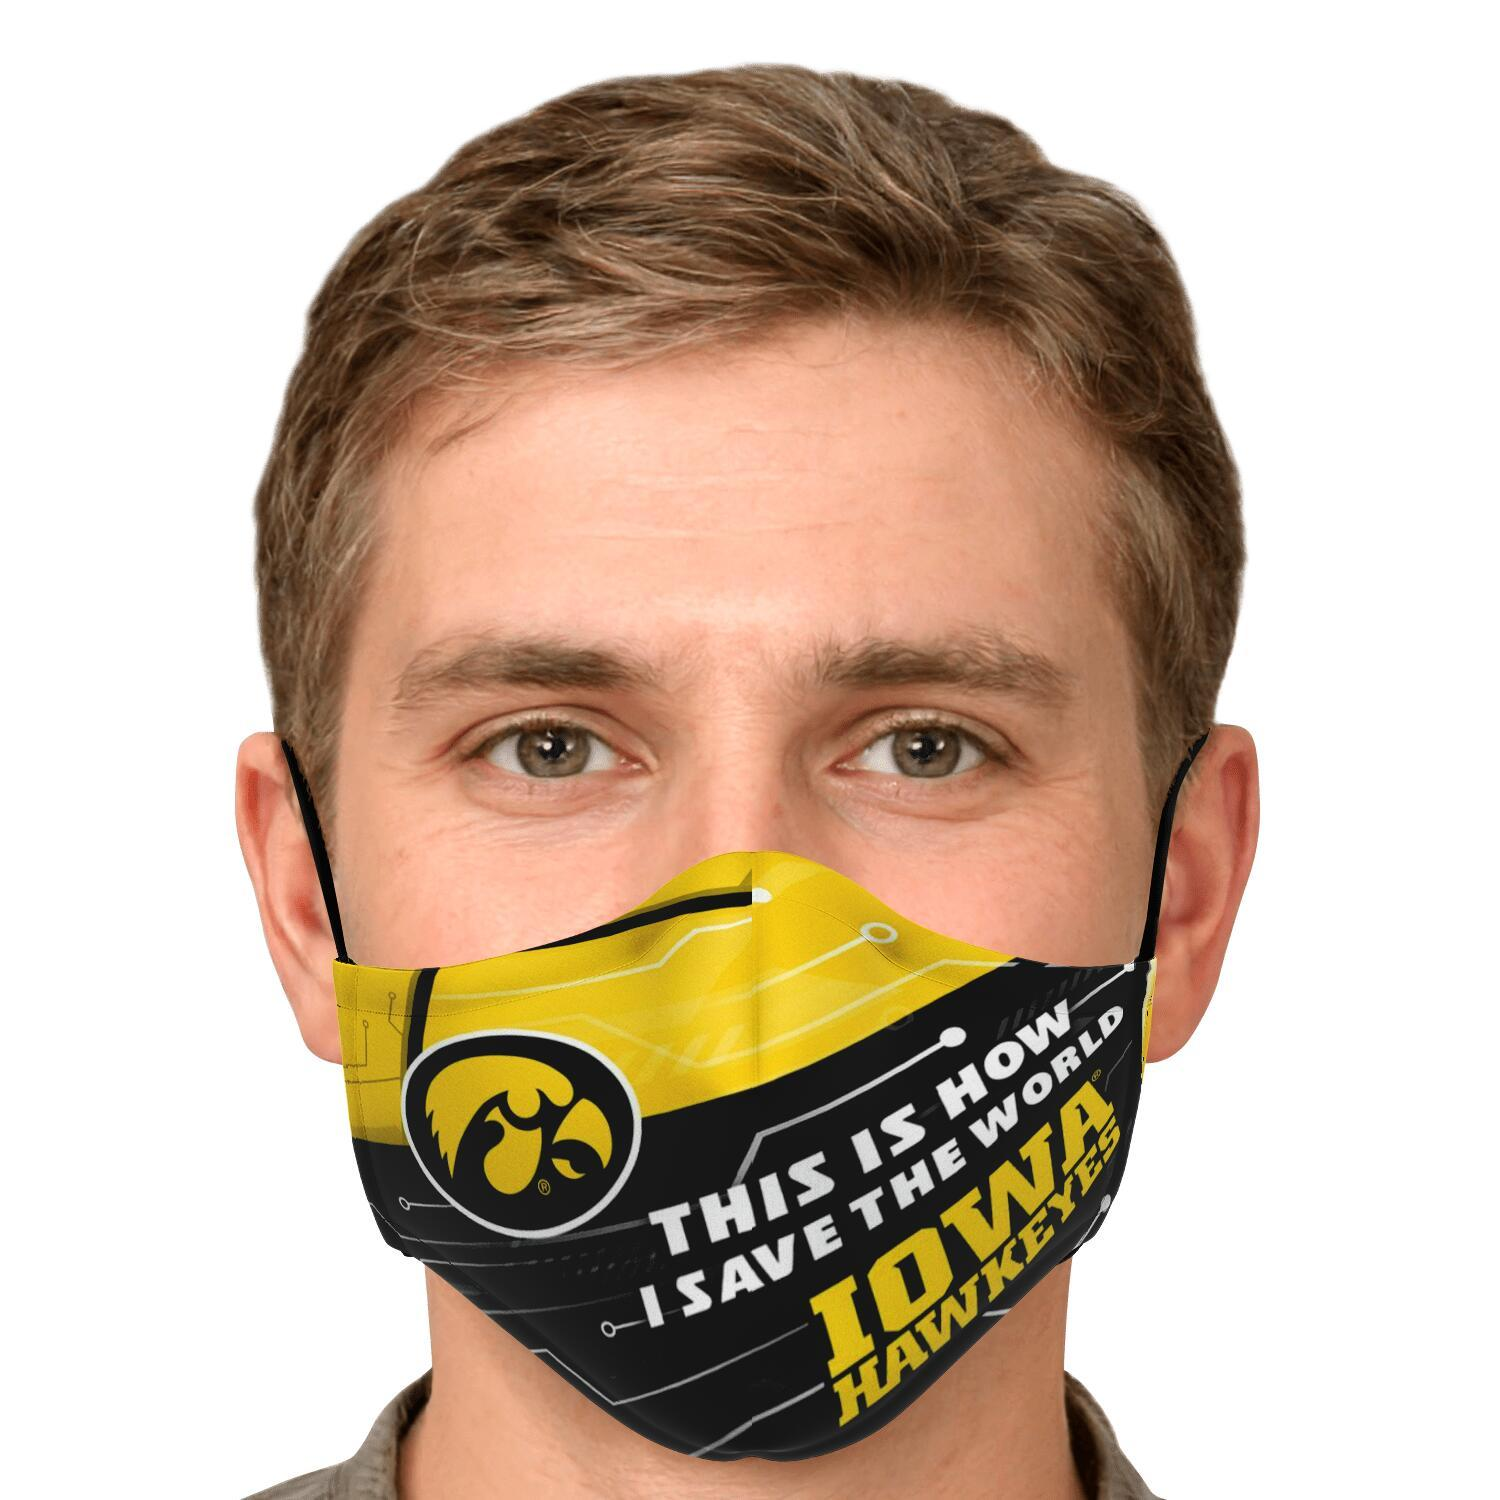 This Is How I Save The World Iowa Hawkeyes Face Masks 4